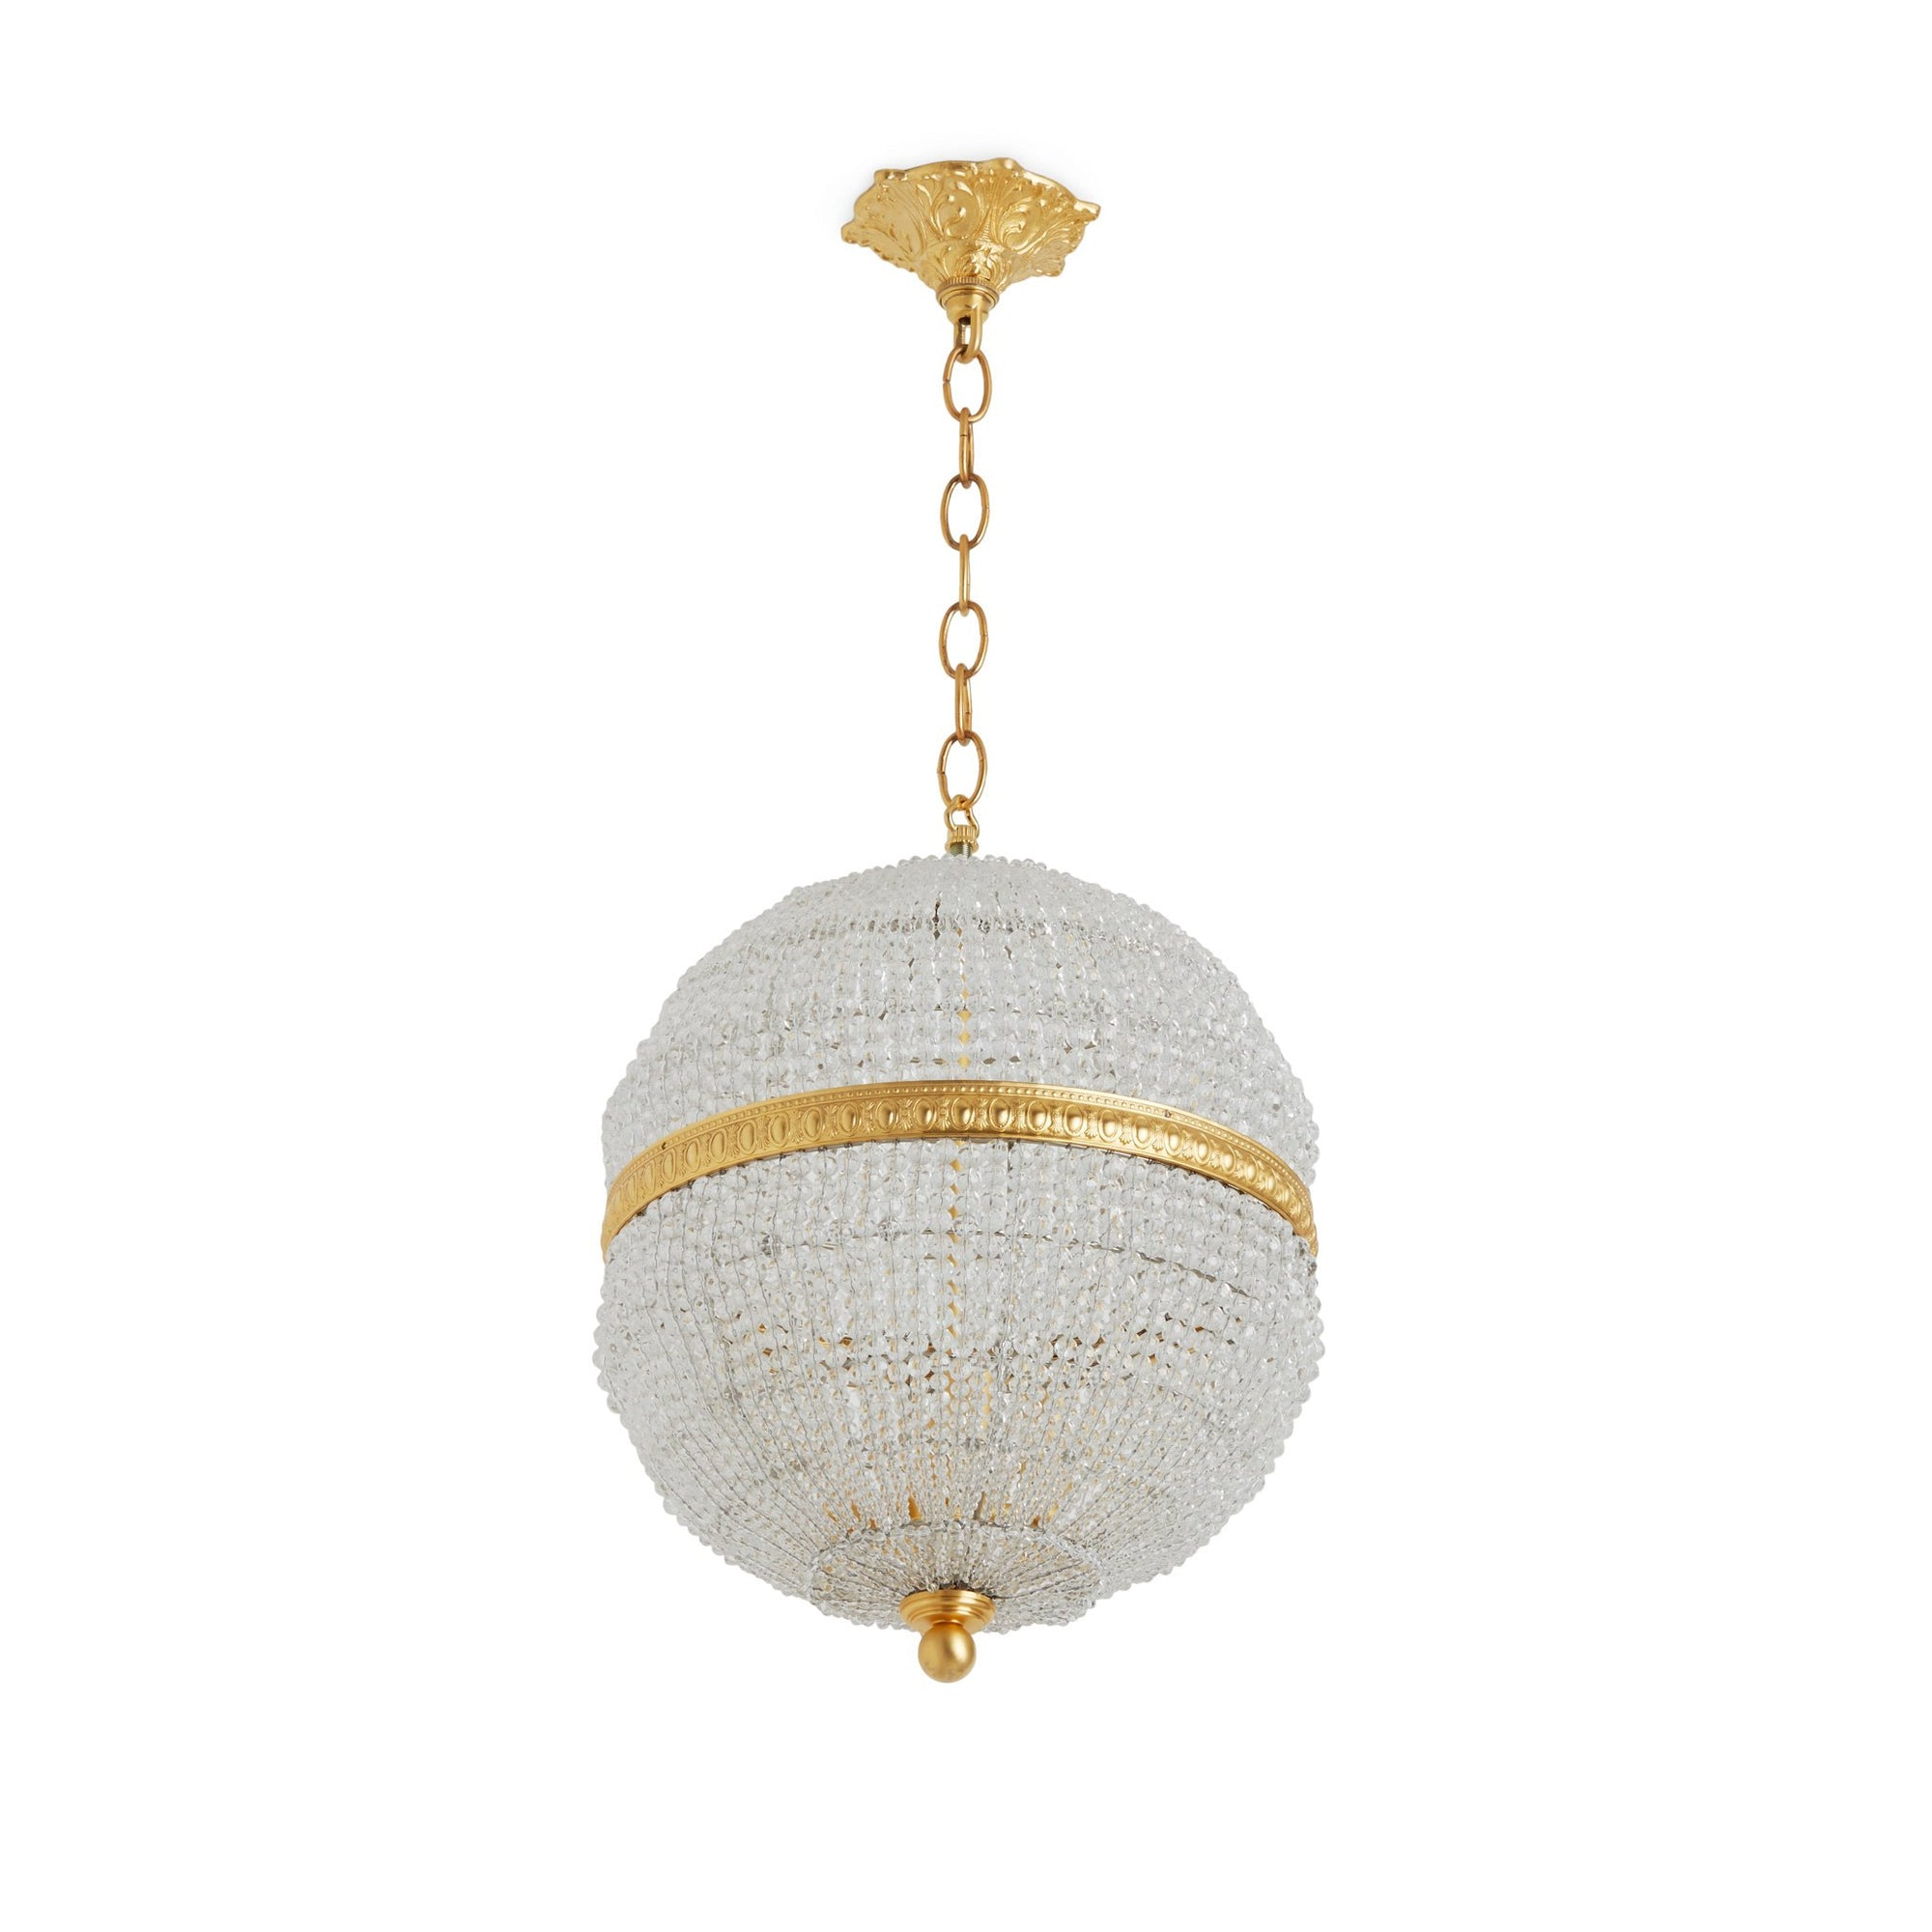 7112-PNDT-CHNS-GP Sherle Wagner International Globe Crystal Beaded 12 inches Pendant Light Gold plate metal finish